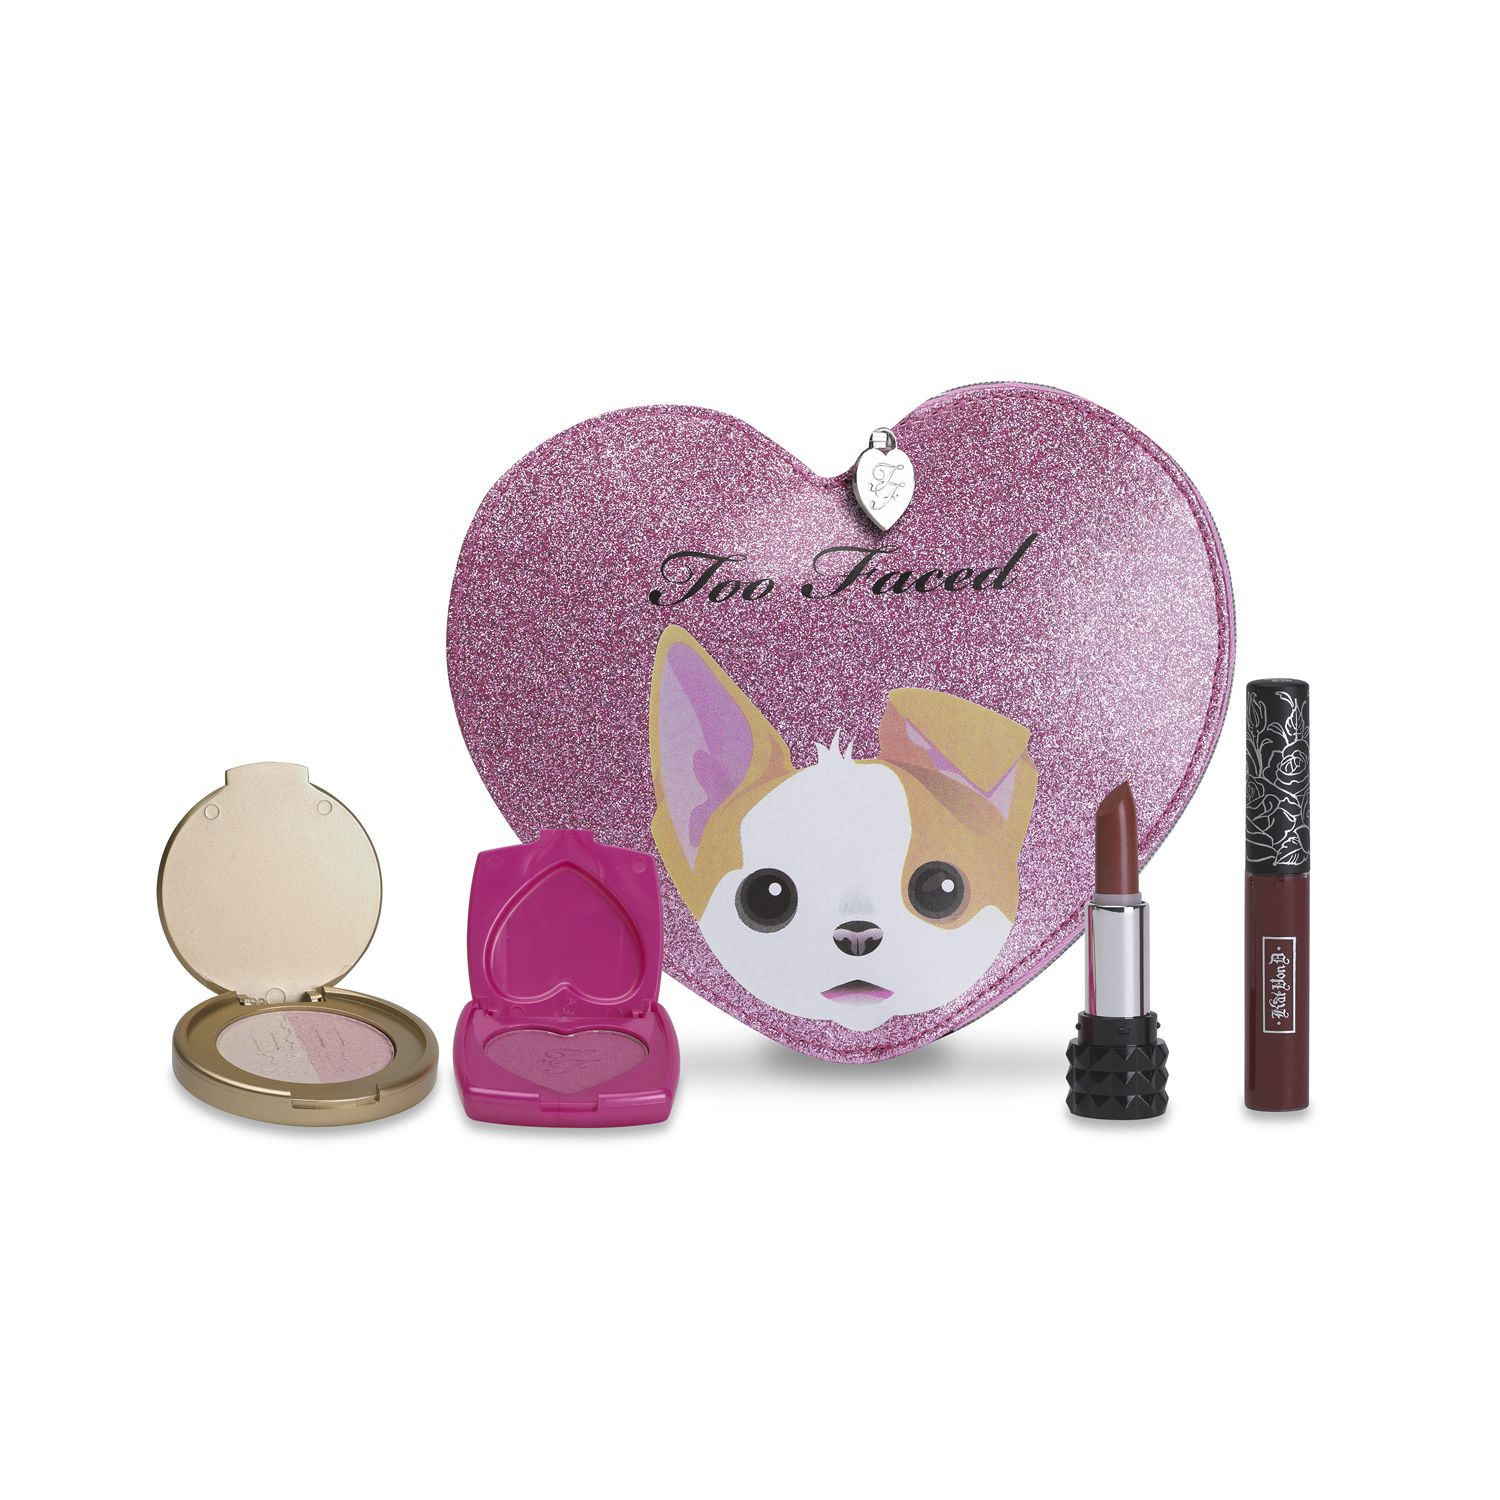 Kat Von D Beauty - Too Faced x Kat Von D - Better Together Cheek ...